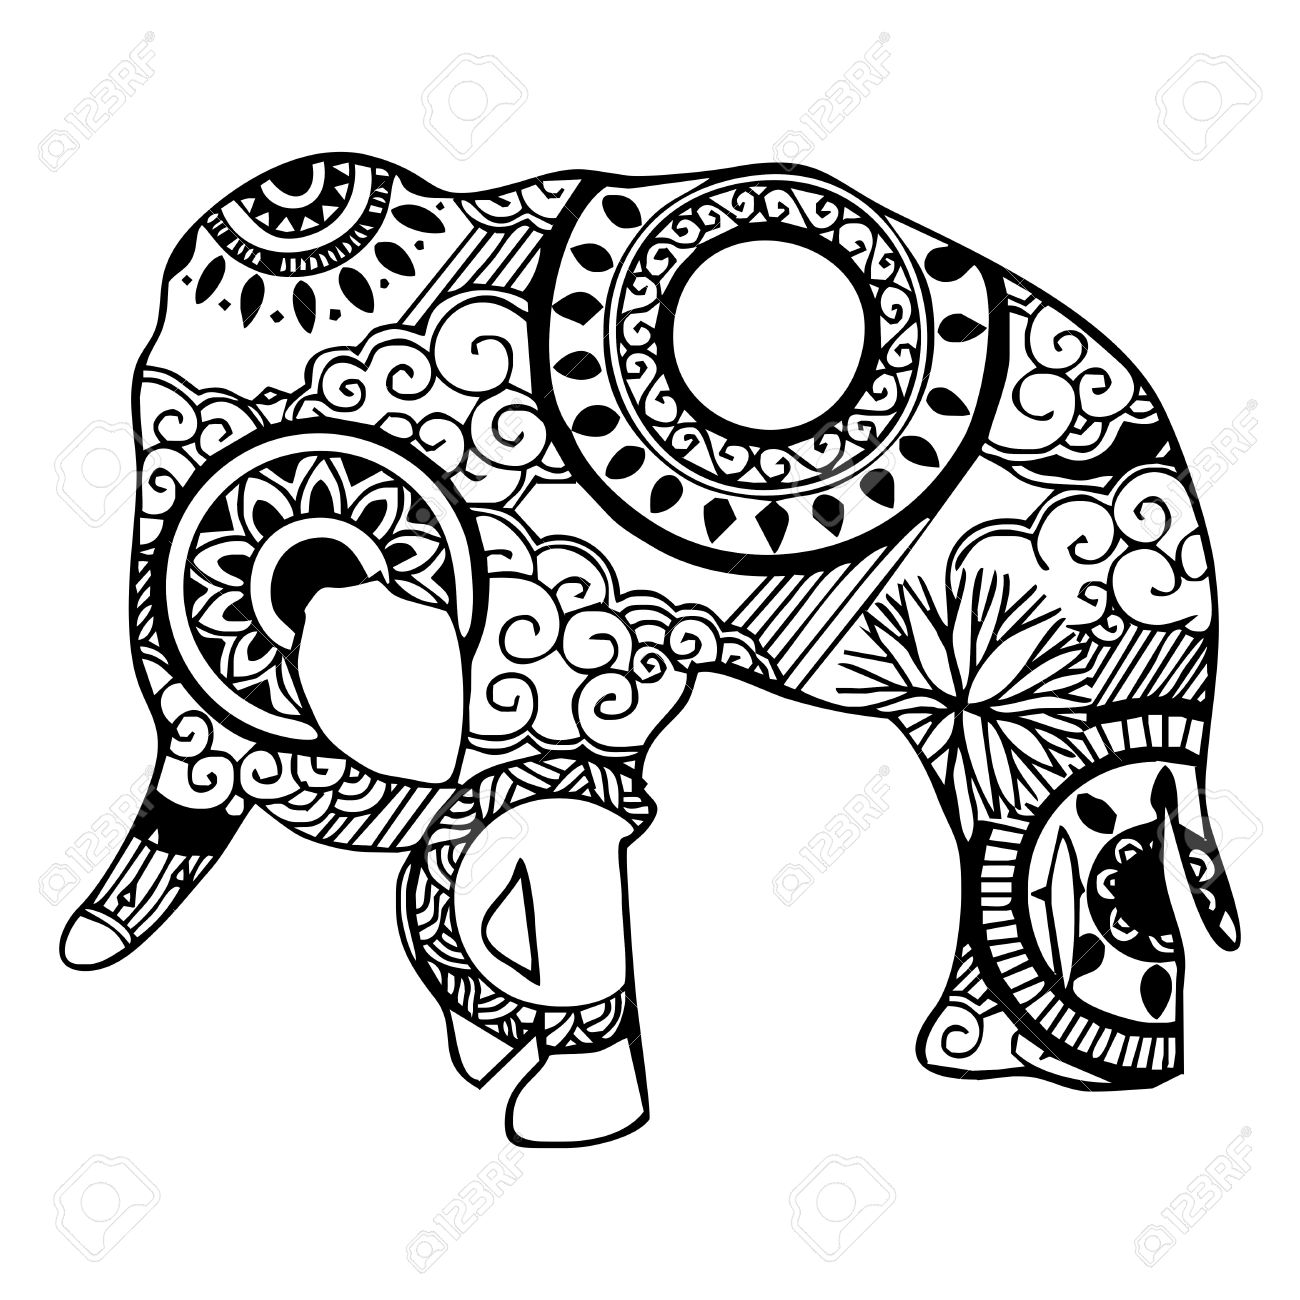 1300x1300 Elephant With Cloud And Rain Ornament Tattoo Royalty Free Cliparts